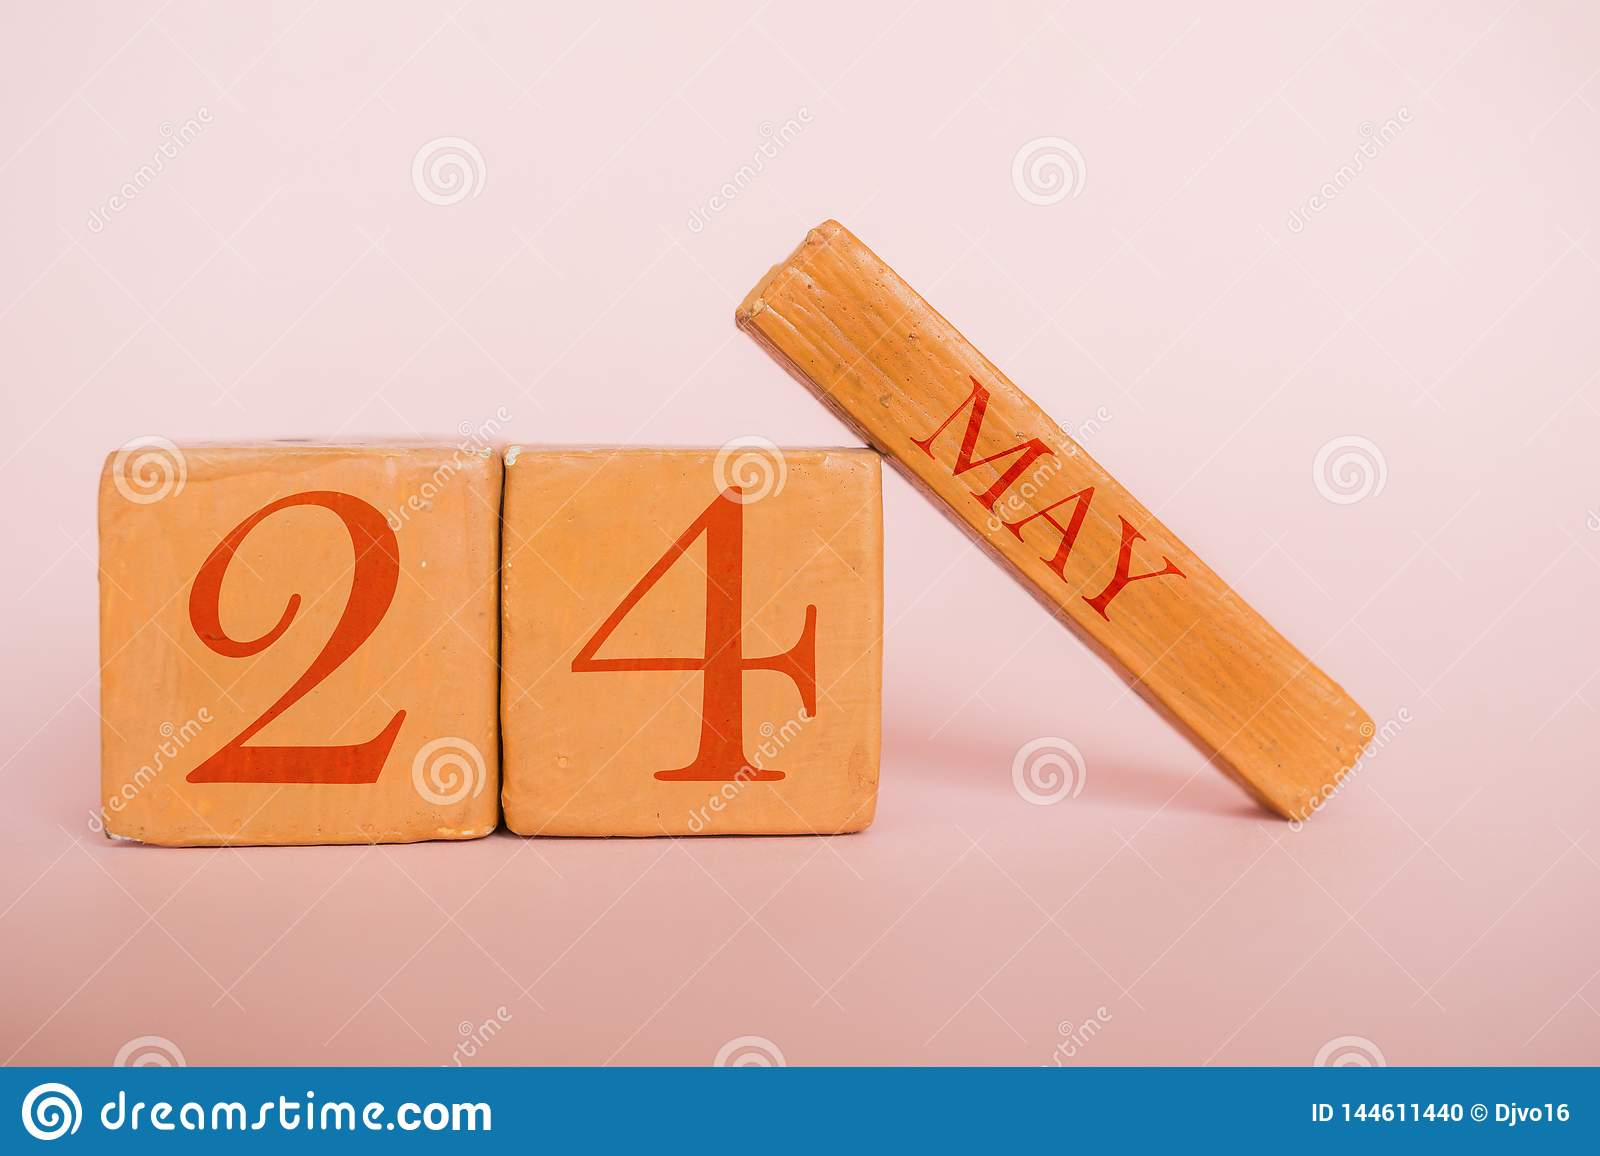 may 24th. Day 24 of month, handmade wood calendar  on modern color background. Spring month, day of the year concept